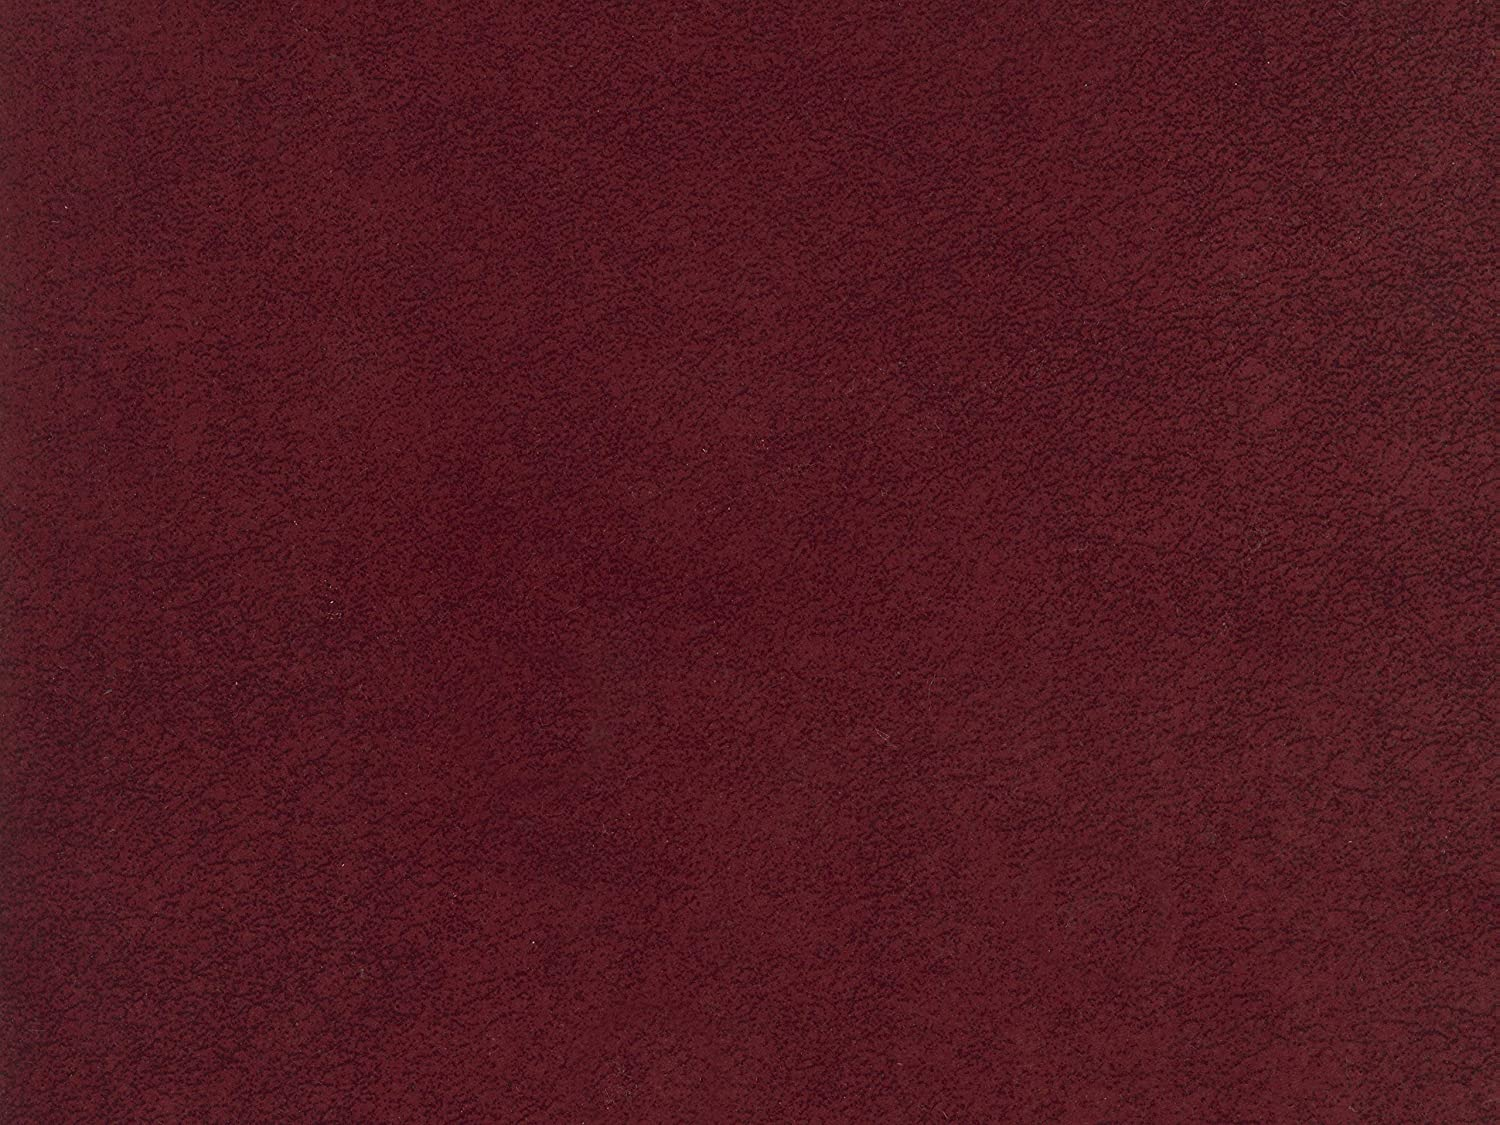 Liz Jordan Hill Featuring Marina Collection - 123 Brindle Upholstery Fabric by The Yard - Polyester & Acrylic Fabric - Elegant Collection - Stain Resistant Upholstery Fabric - Pet Friendly - Sangria